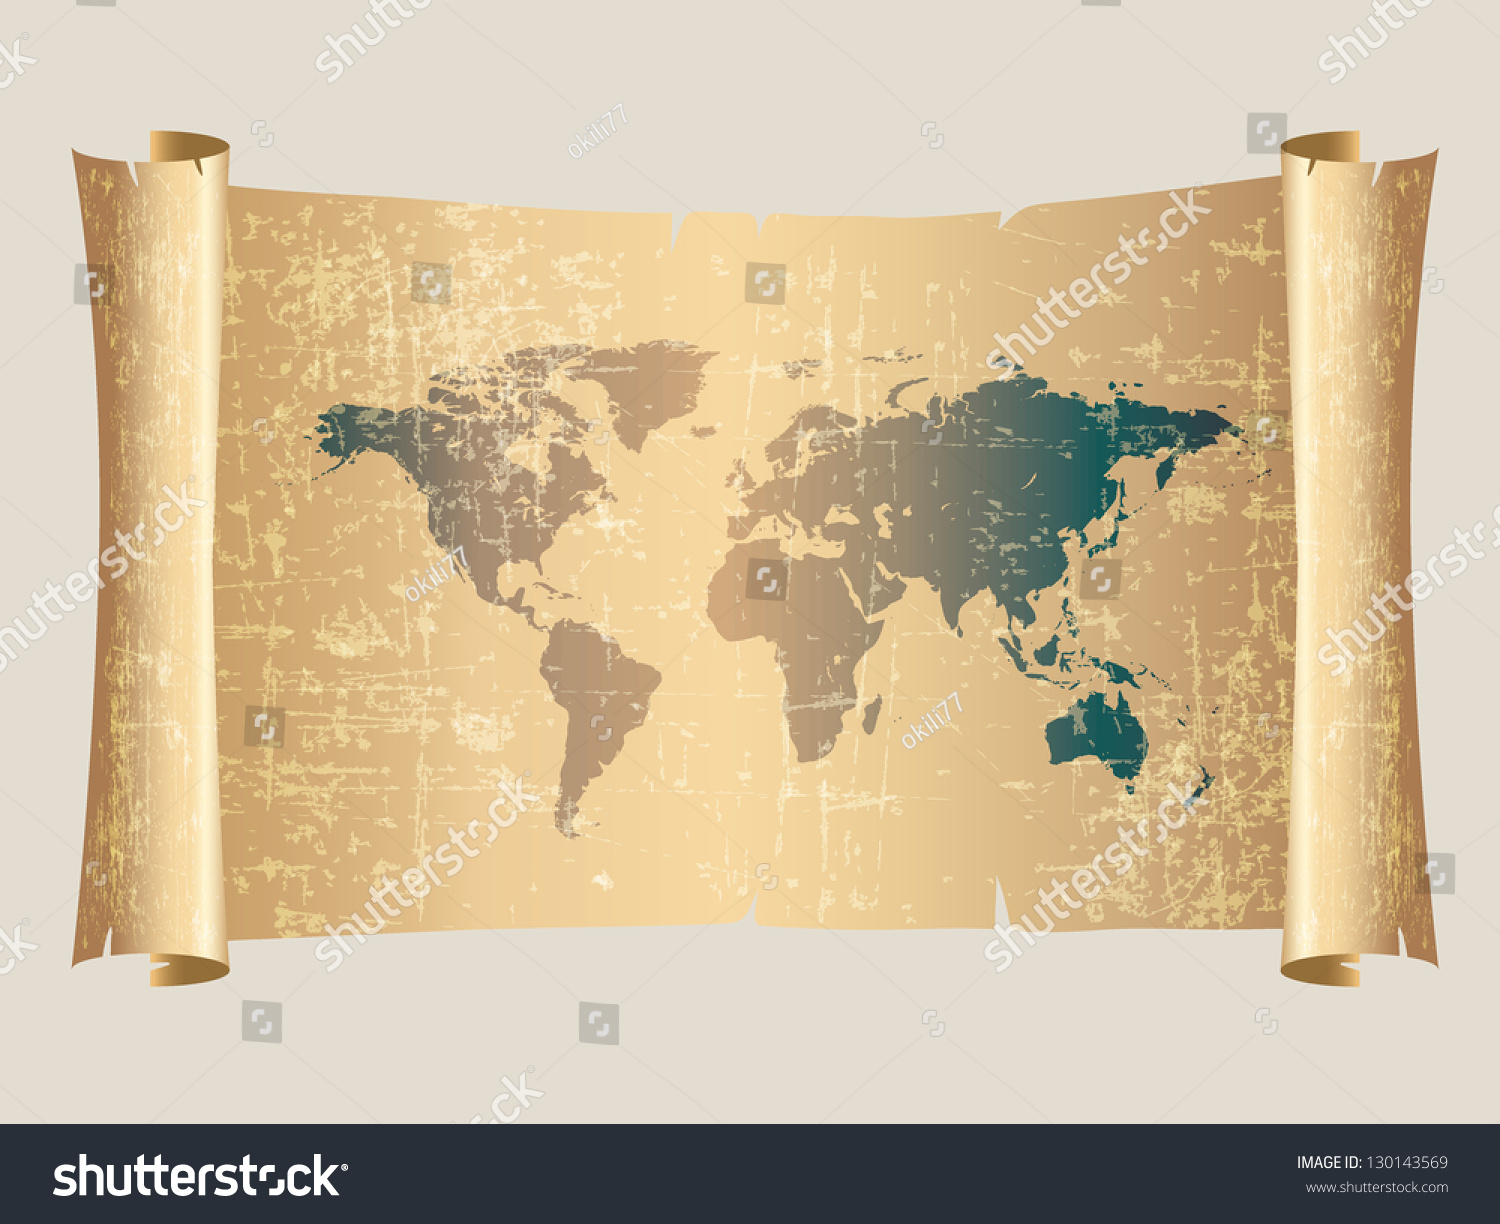 World map vintage style on scroll stock vector 130143569 shutterstock gumiabroncs Images